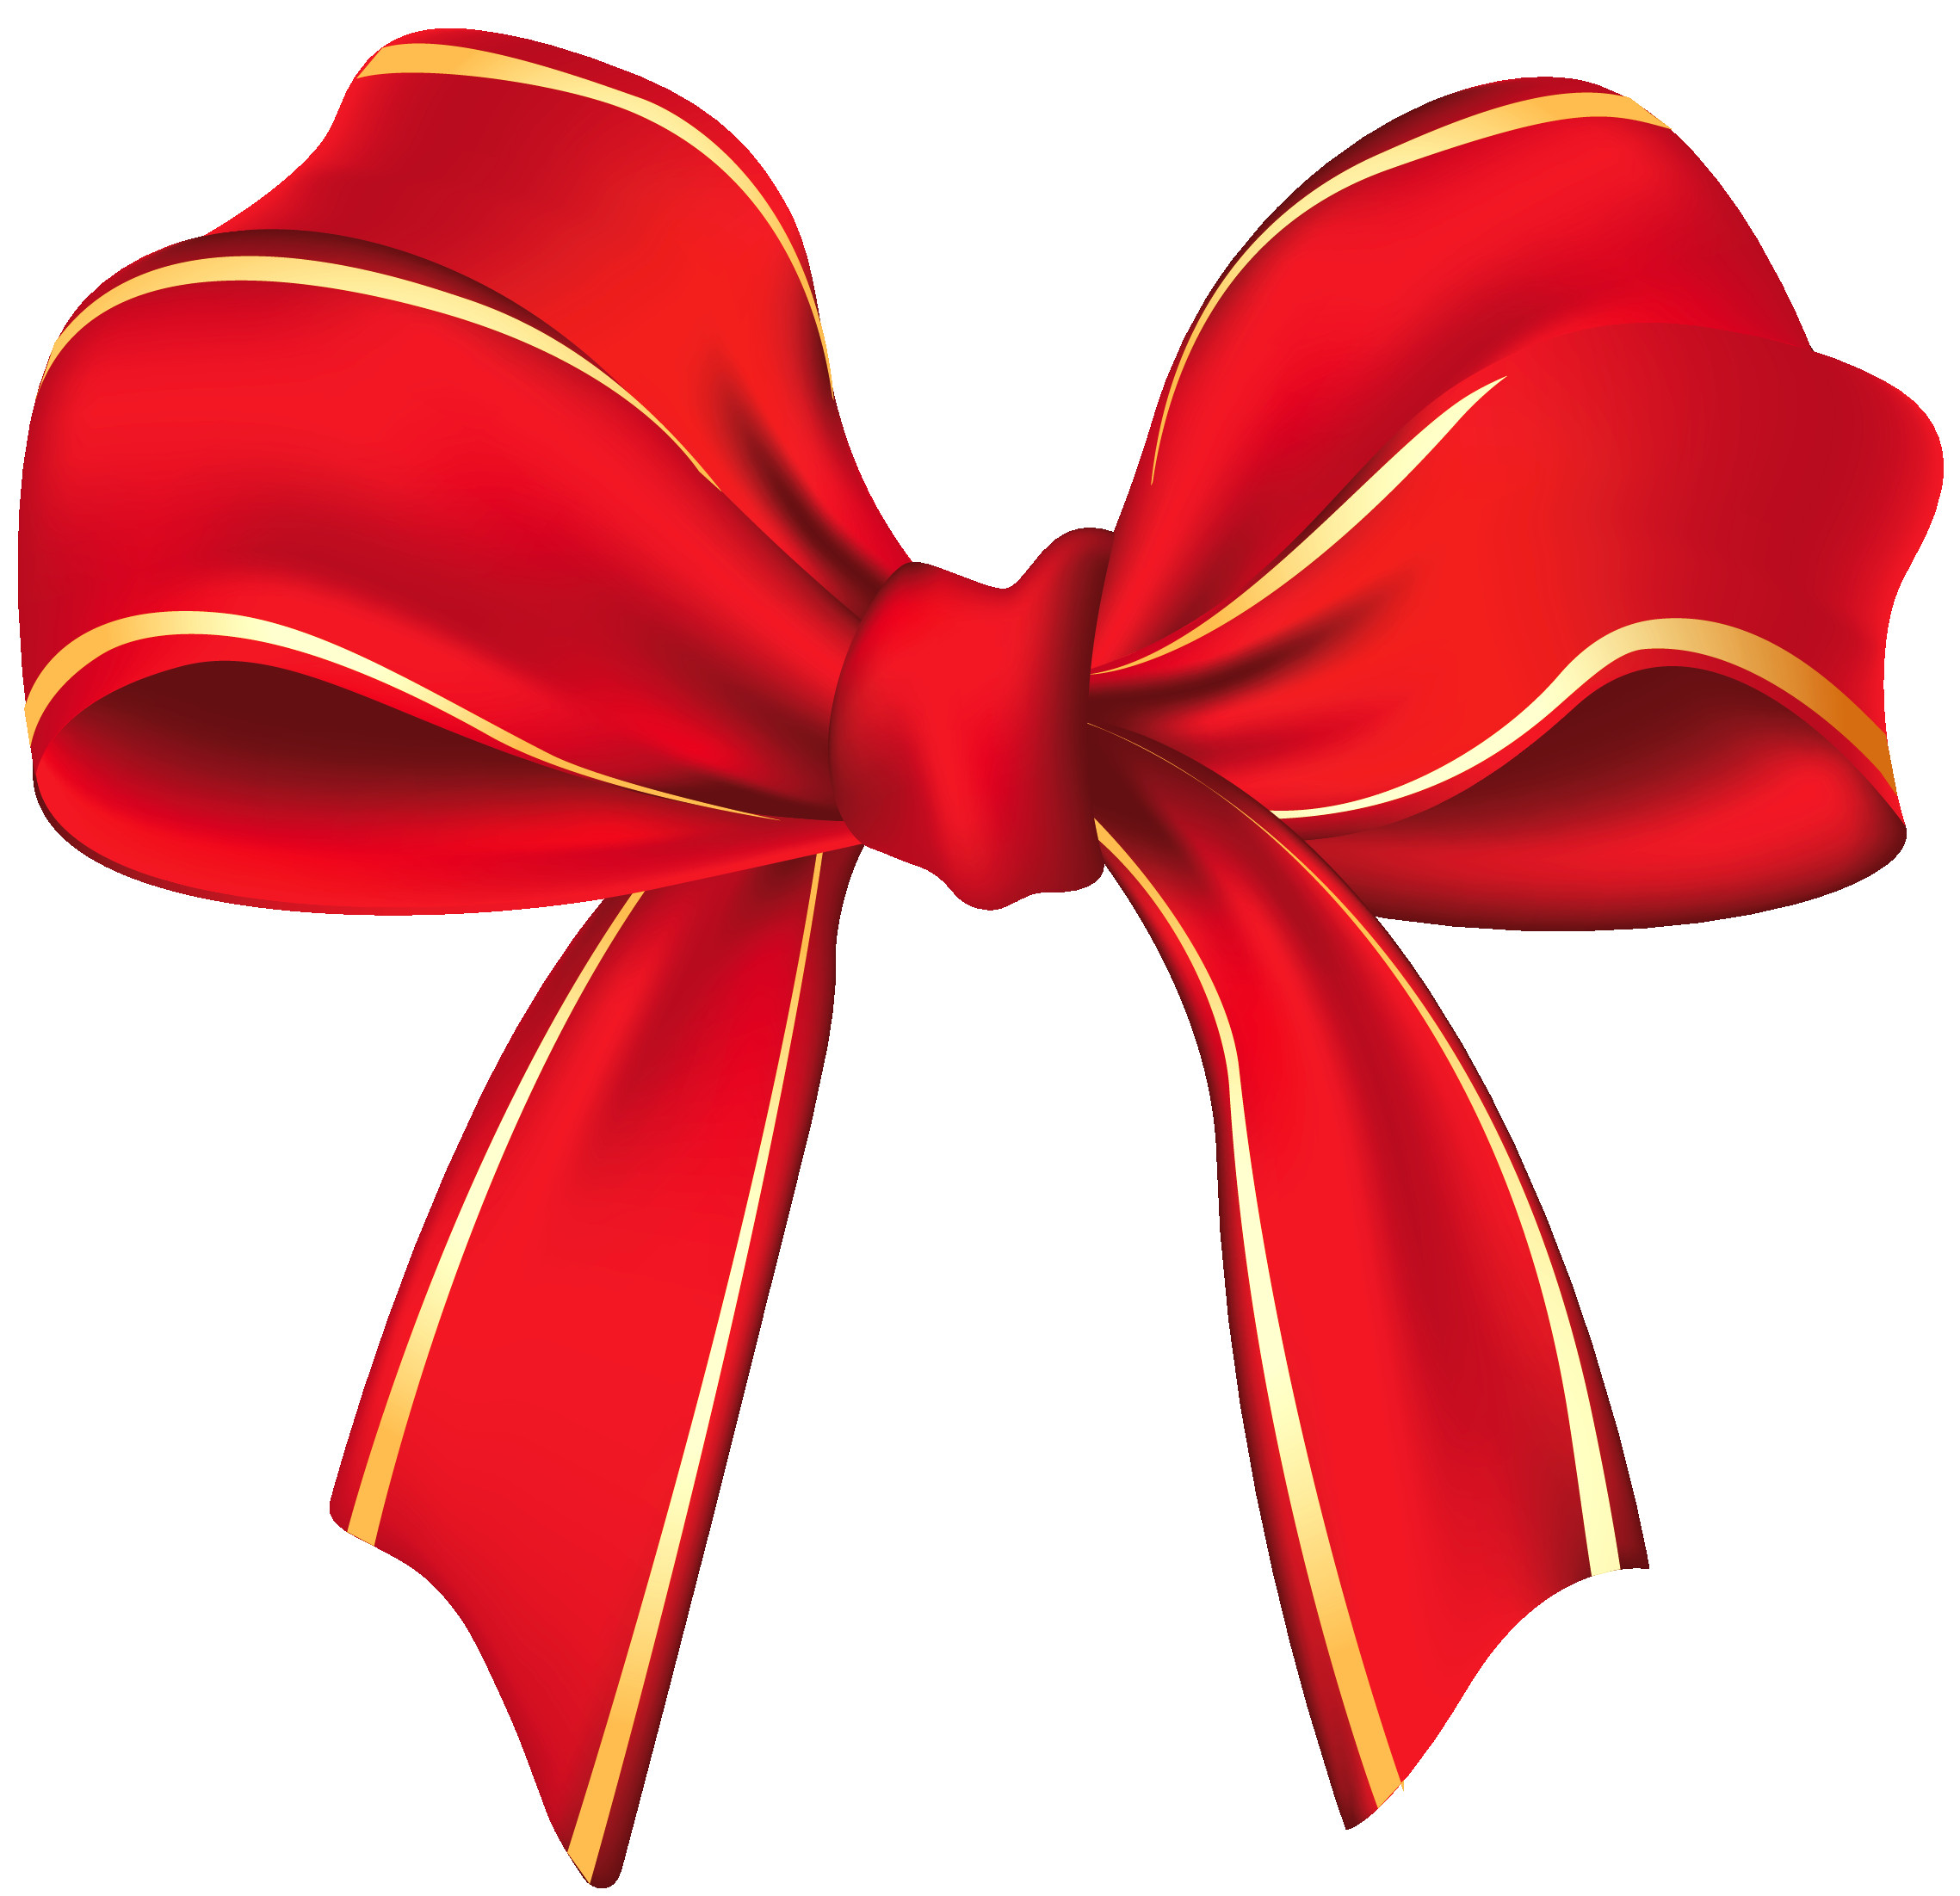 2277x2203 Red Ribbon And Bow Png Clipart Image Png M 1440039301 Clip Art